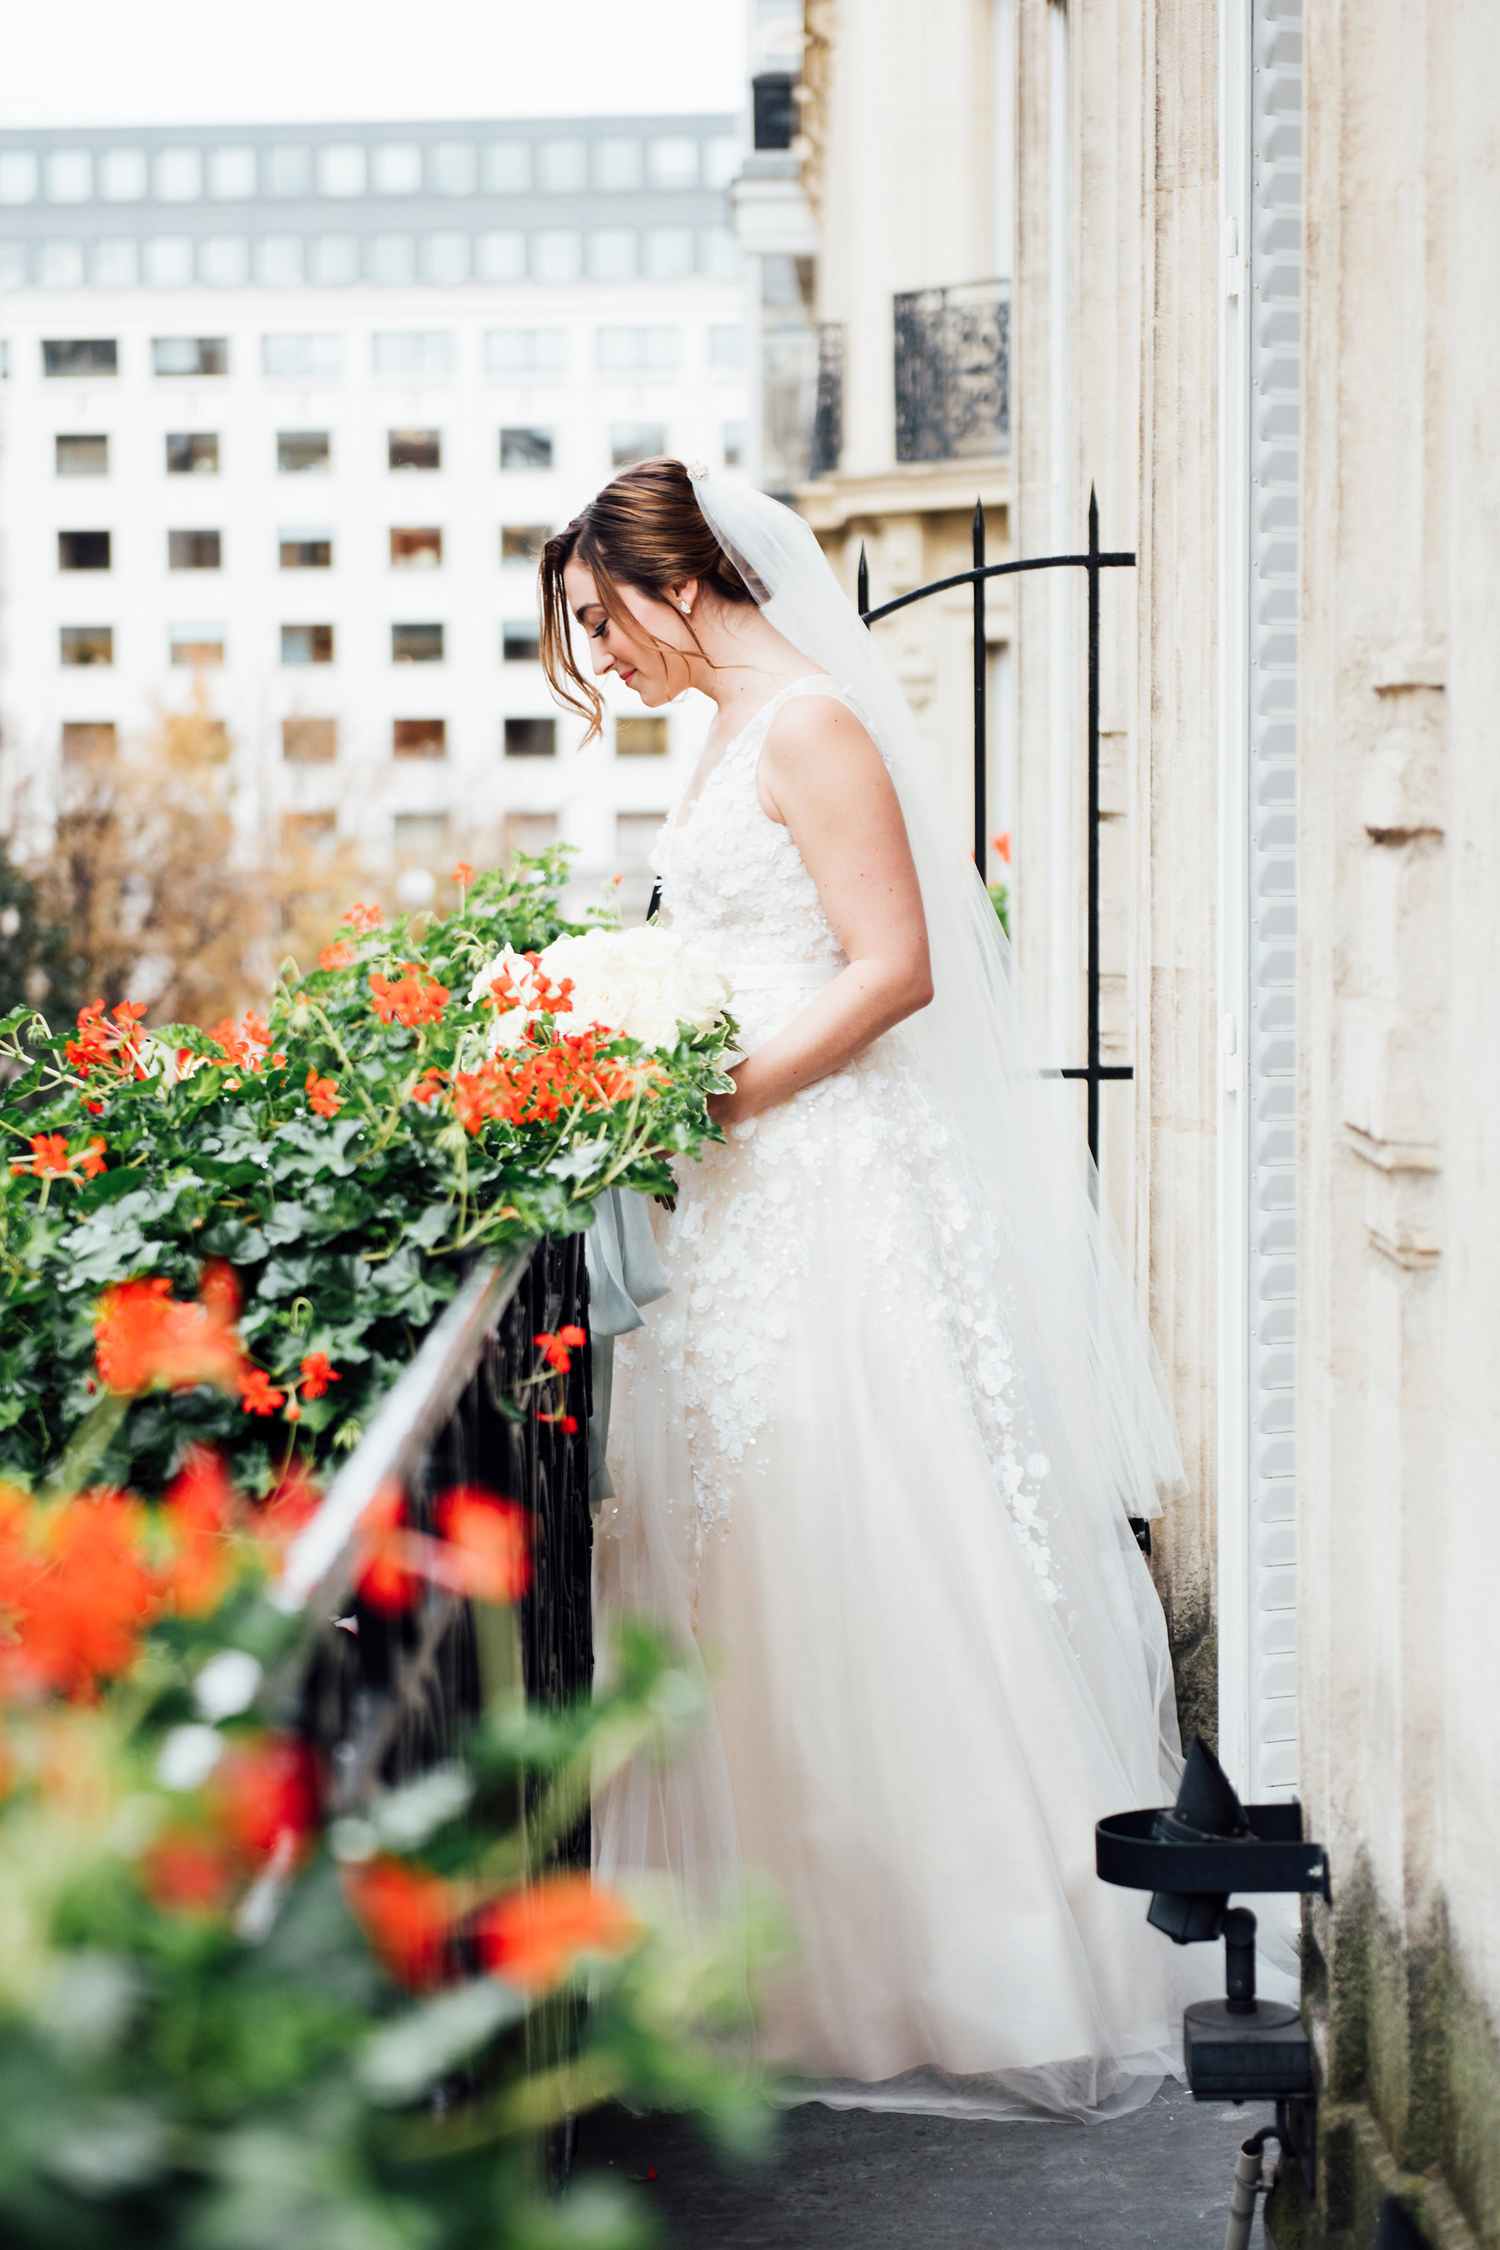 127-katie-mitchell-paris-europe-destination-elopement-wedding-photographer-france.jpg